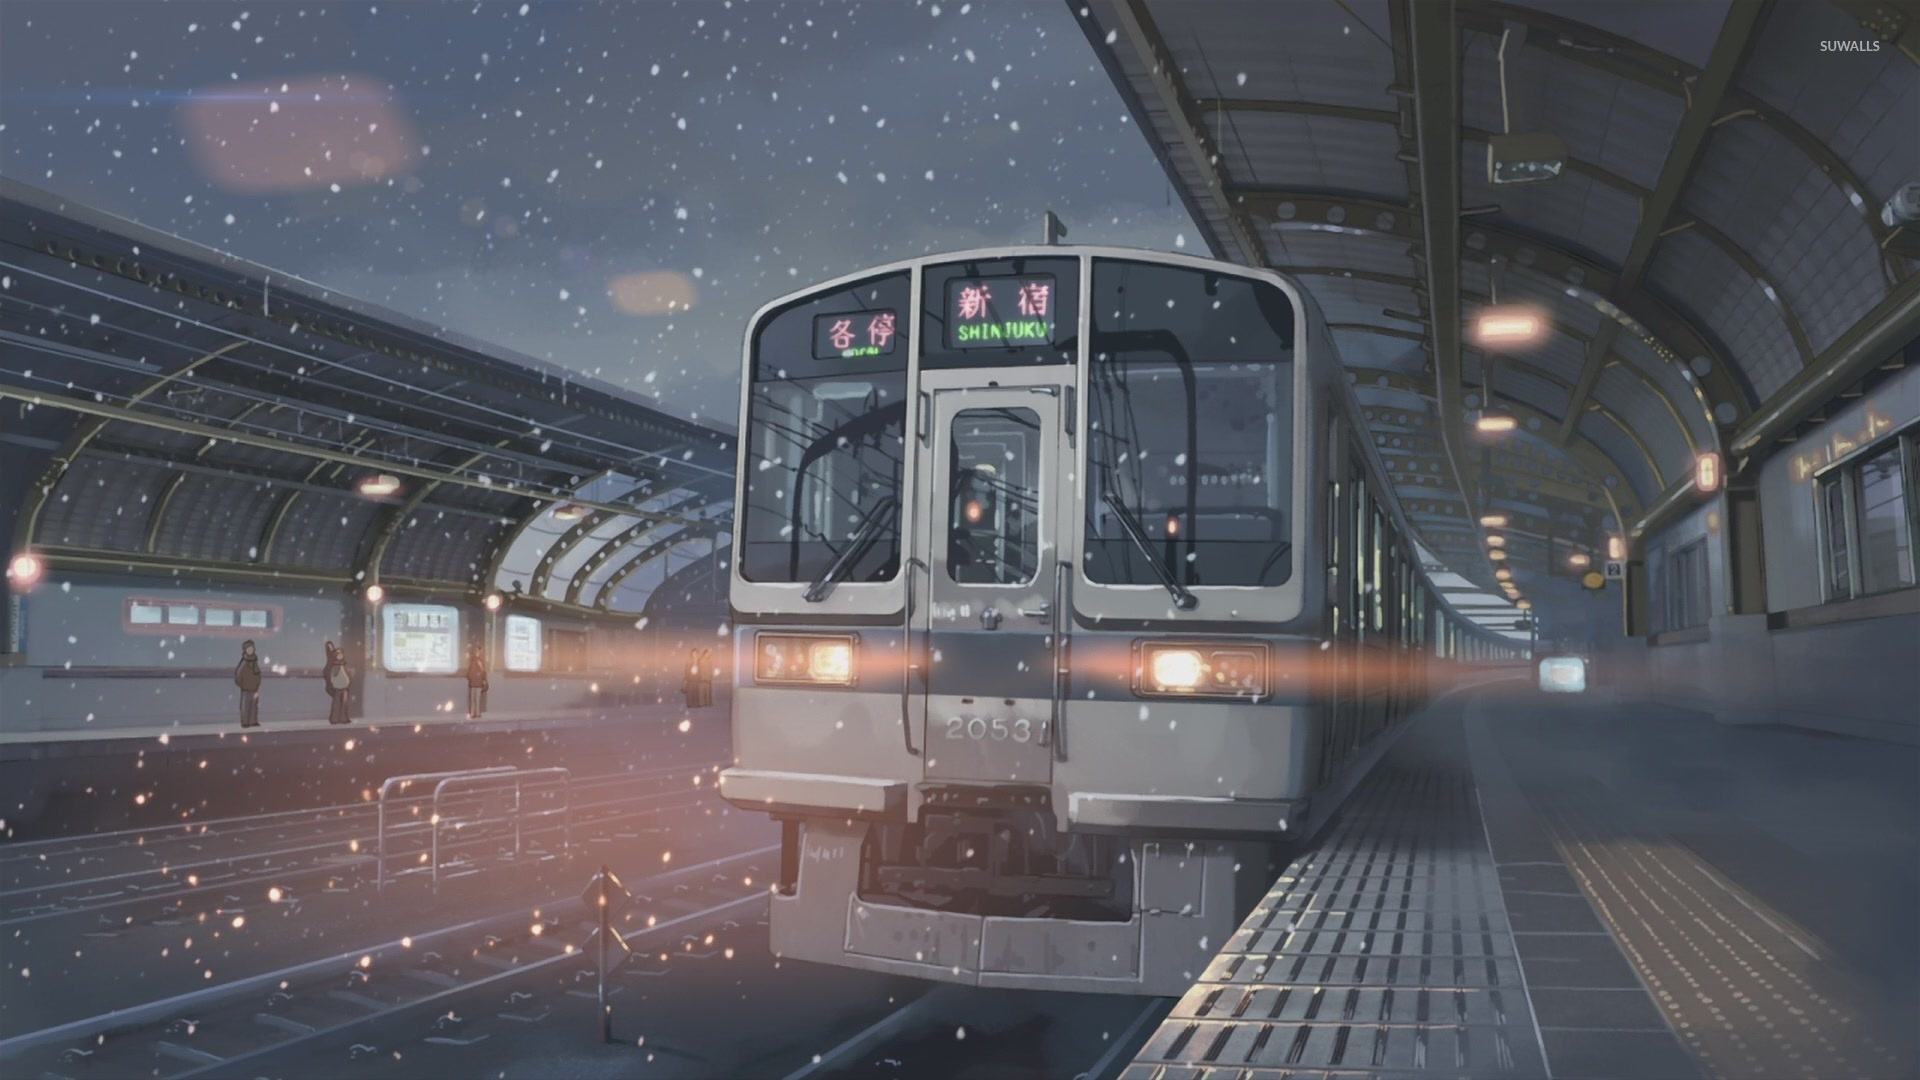 5 Centimeters Per Second 5 Wallpaper Anime Wallpapers 42705